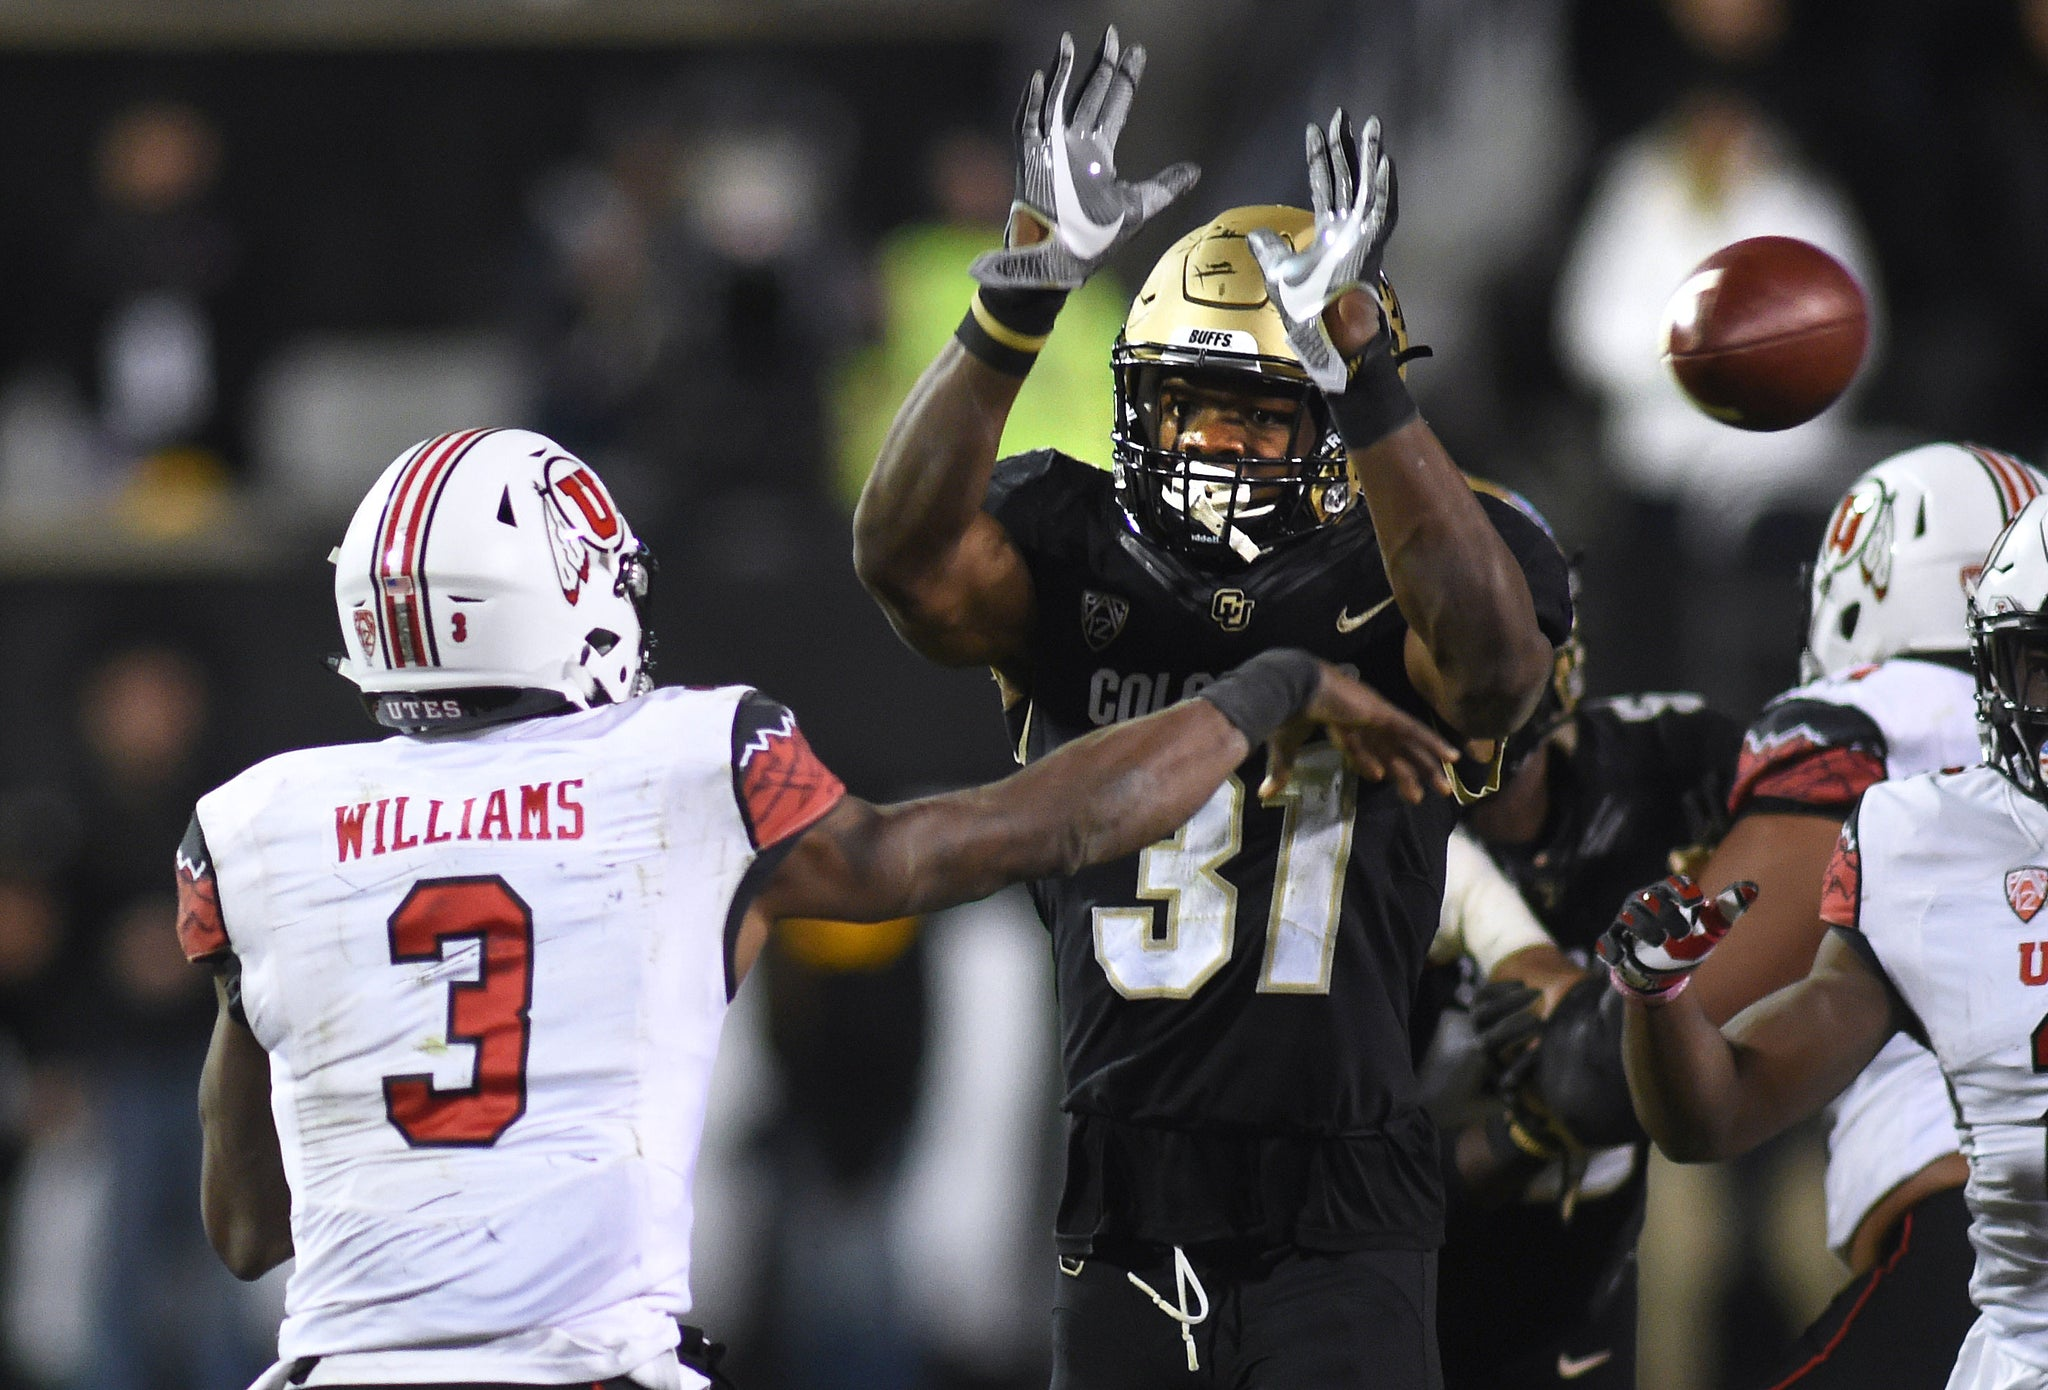 Colorado's Kenneth Olugbode pressures Utah QB Troy Williams. -- Cliff Grassmick